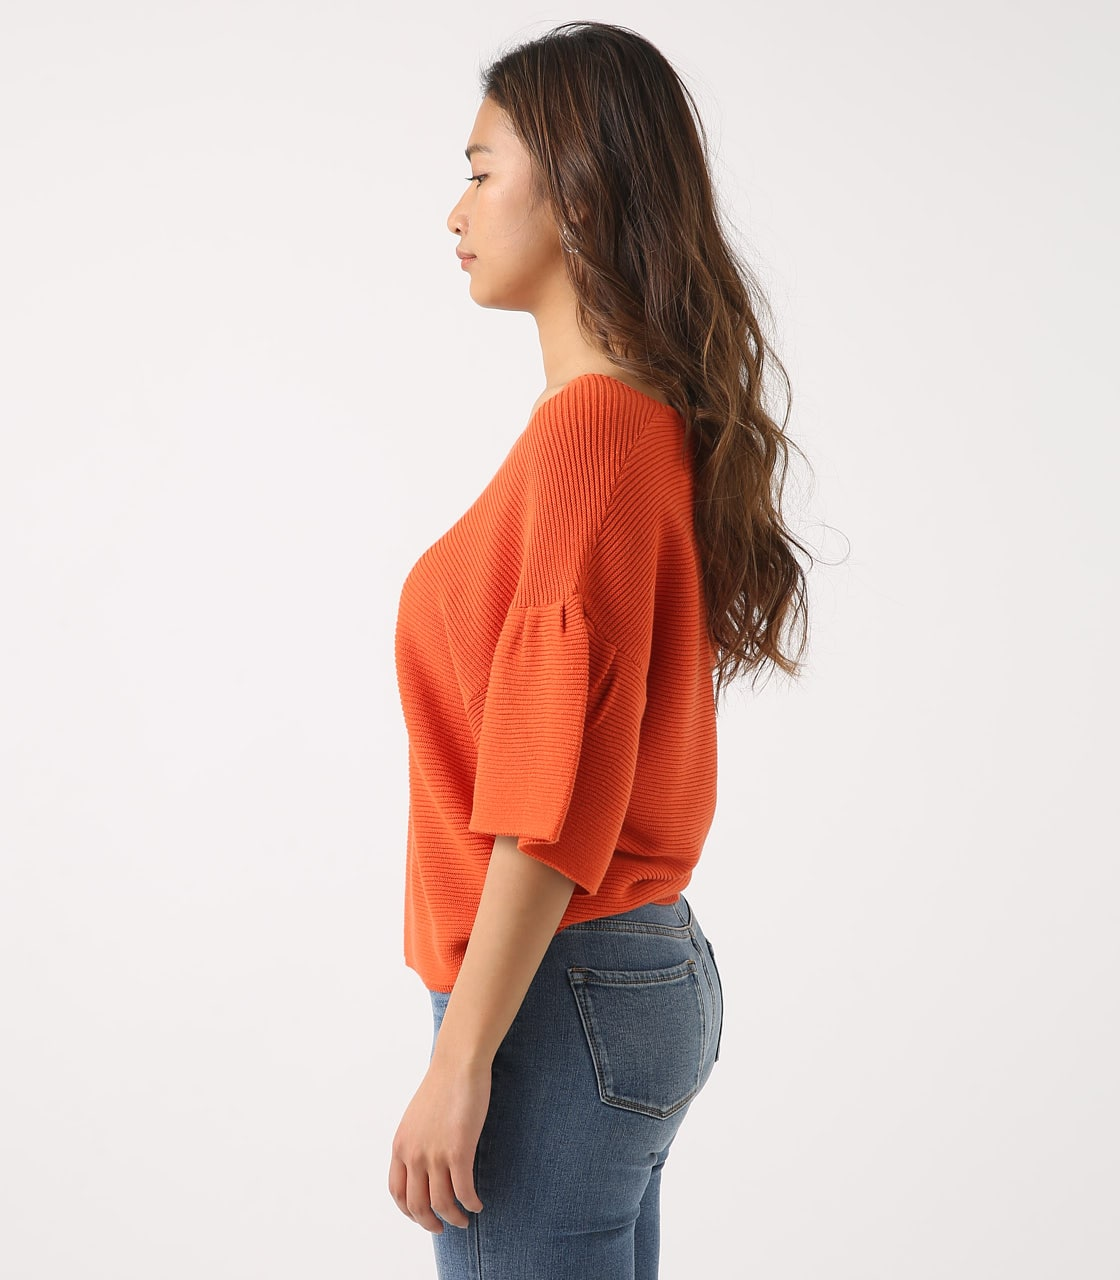 【AZUL BY MOUSSY】FLARE SLEEVE GARTER TOPS 詳細画像 ORG 6